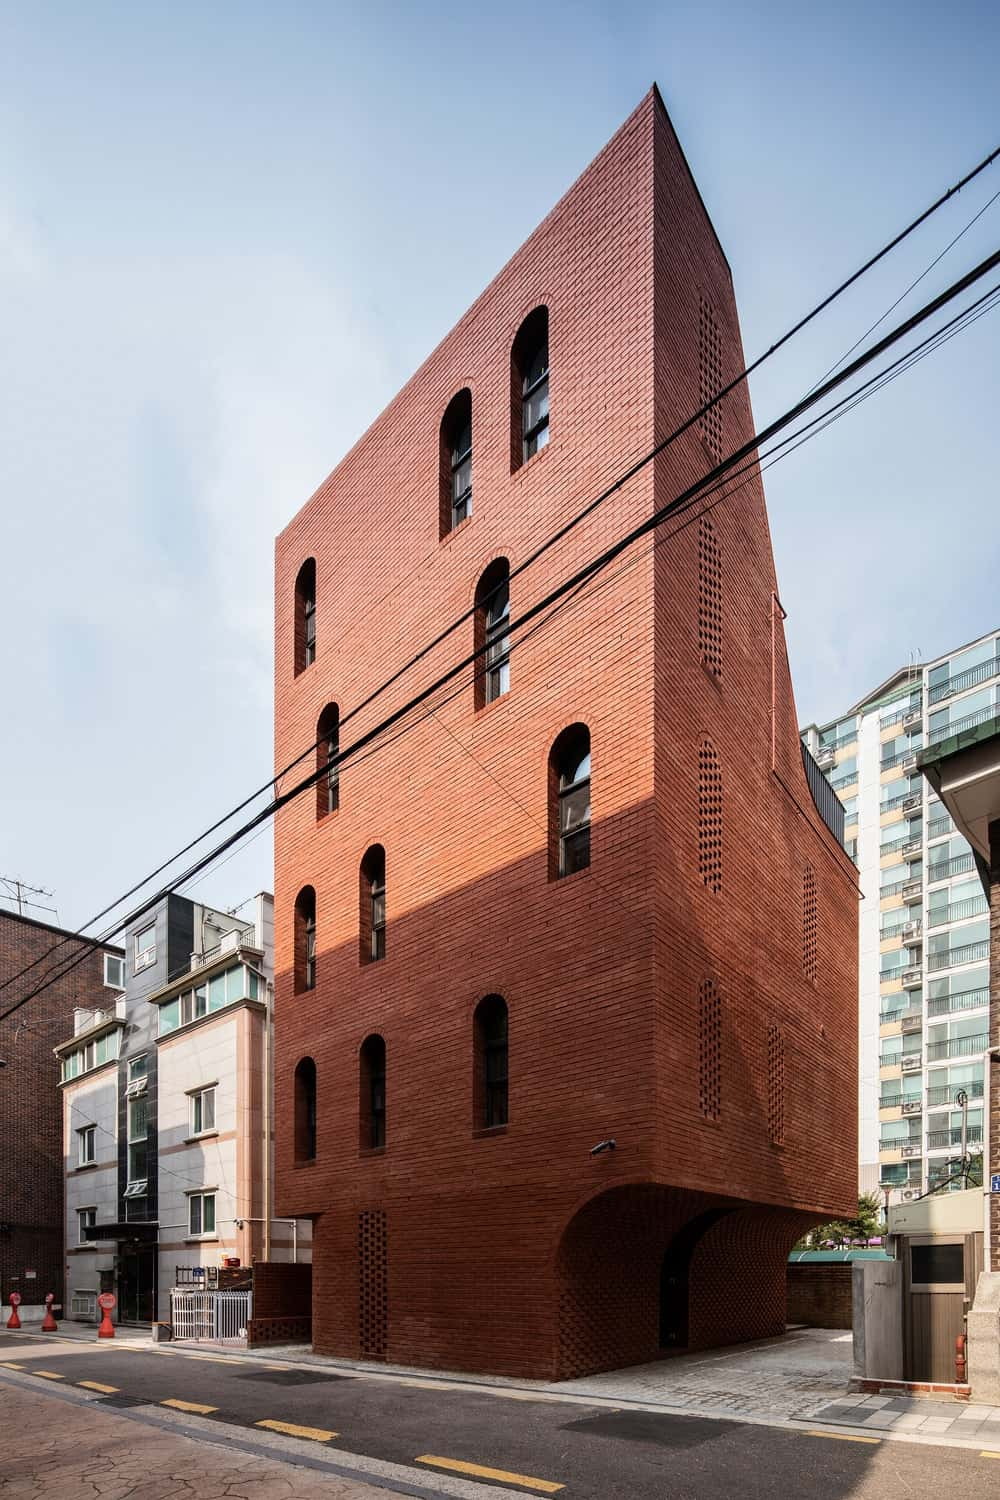 This side of the house showcases more of the unique shape of the red brick building with a cavernous area to make place for parking.